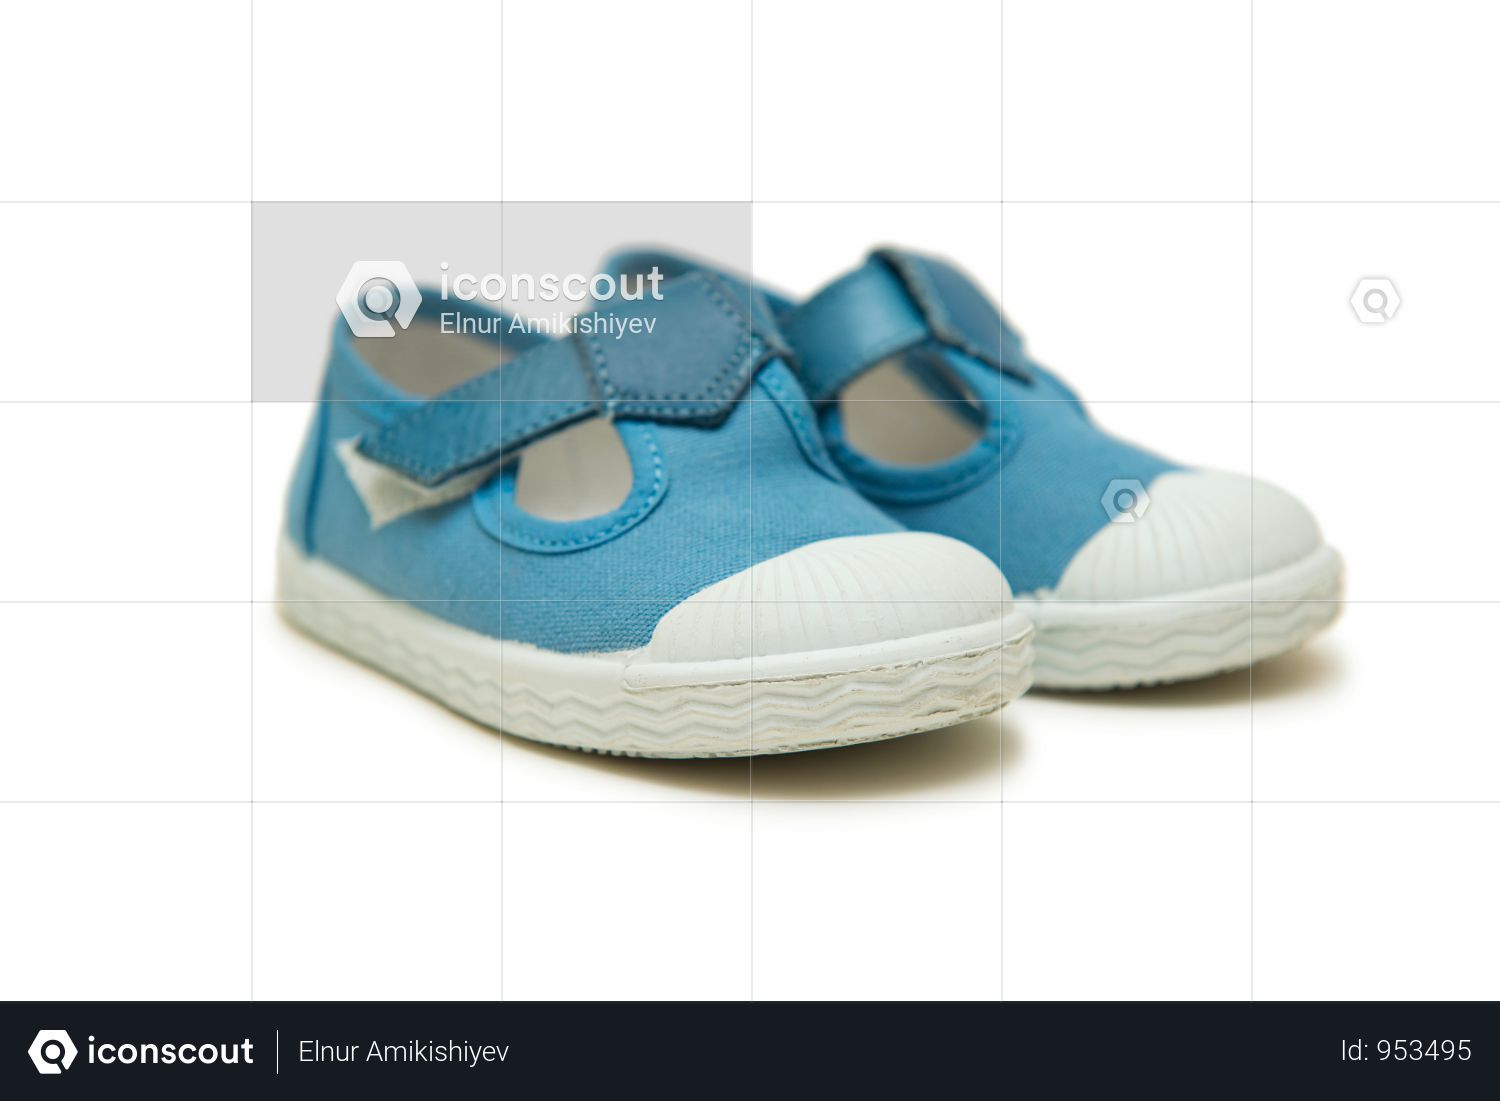 Premium Baby Shoes Isolated On The White Background Photo Download In Png Jpg Format Baby Shoes White Background Photo White Background